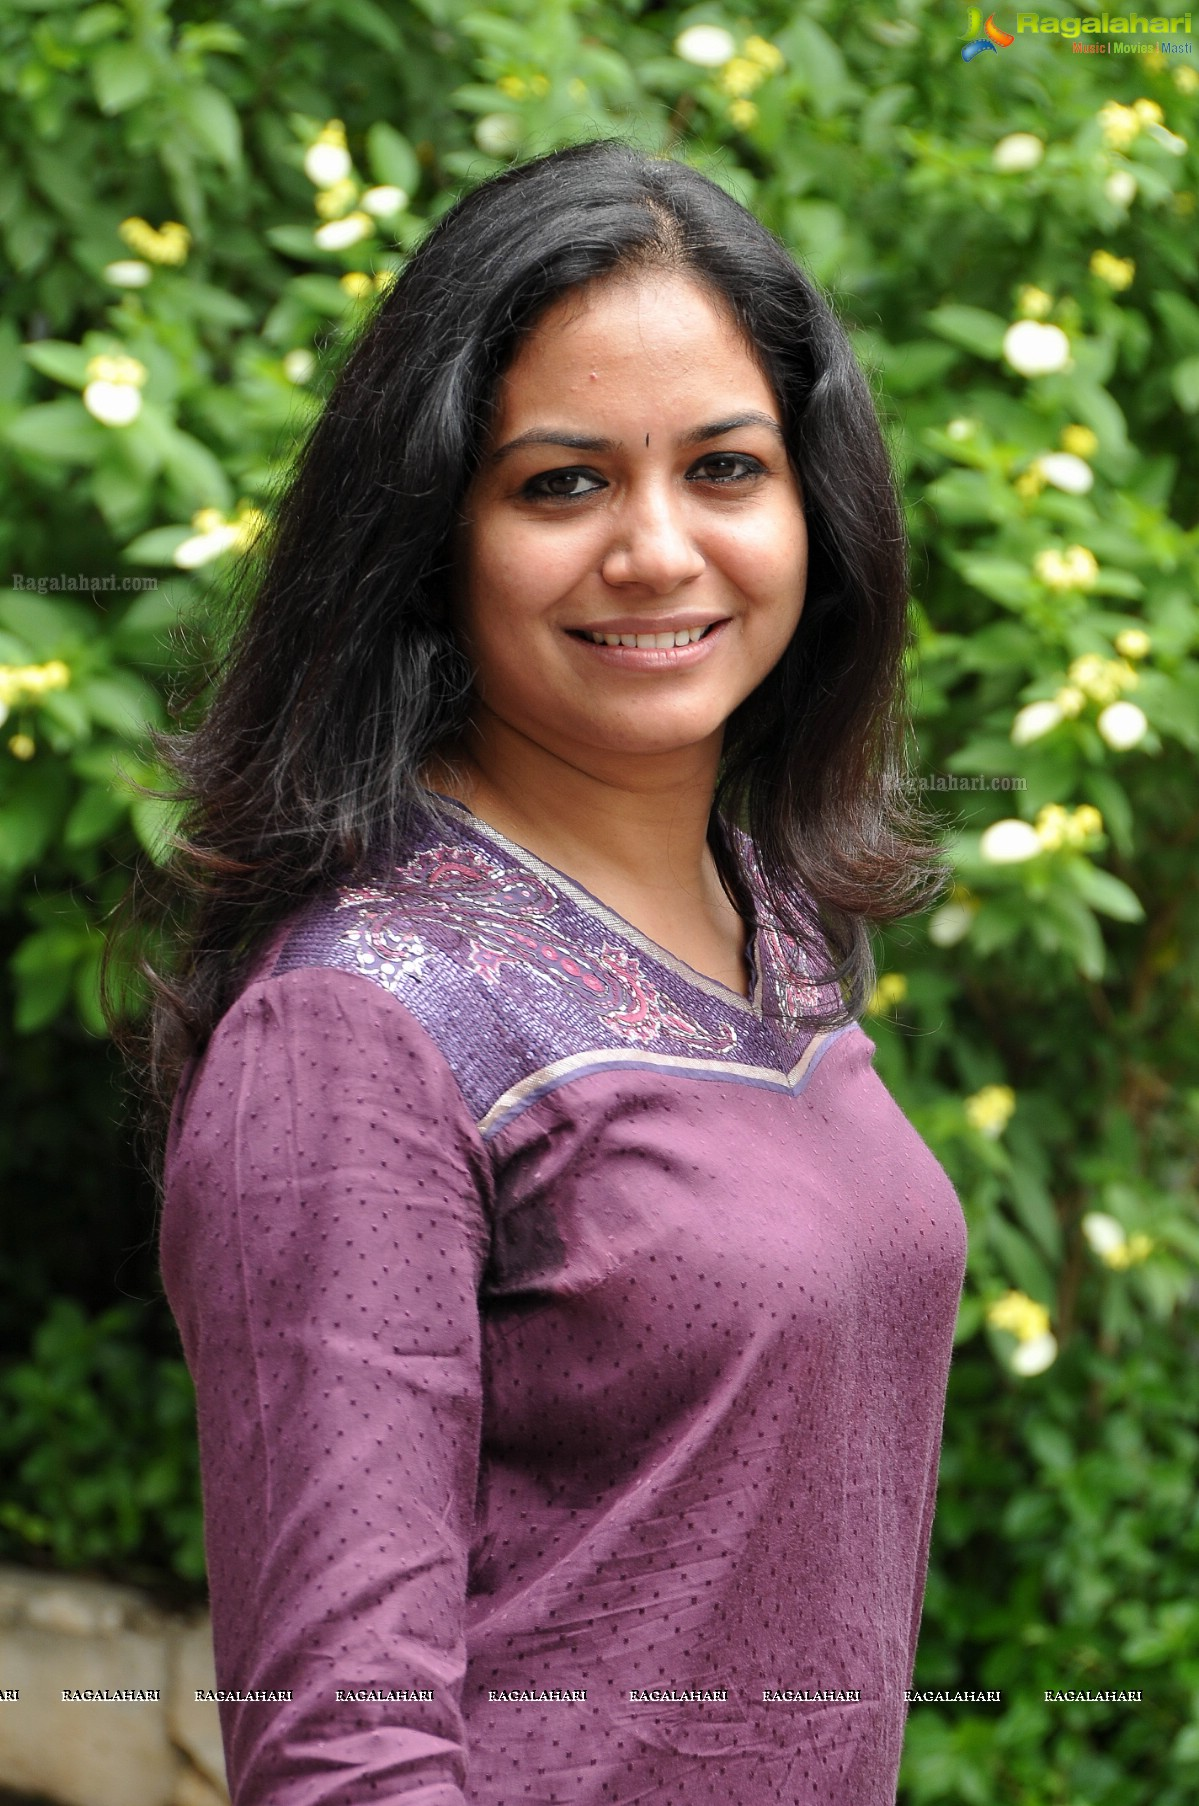 sunitha sarathysunitha sarathy, sunitha sarathy mp3, sunitha singh, sunitha kumari, sunitha rao, sunitha williams, sunitha markose, sunitha krishnan, sunitha singer, sunitha williams, sunitha songs, sunitha actress, sunitha hot, sunitha varma hot, sunitha singer husband, sunitha singer biography, sunitha singer hot, sunitha singer divorce, sunitha singer facebook, sunitha paritala